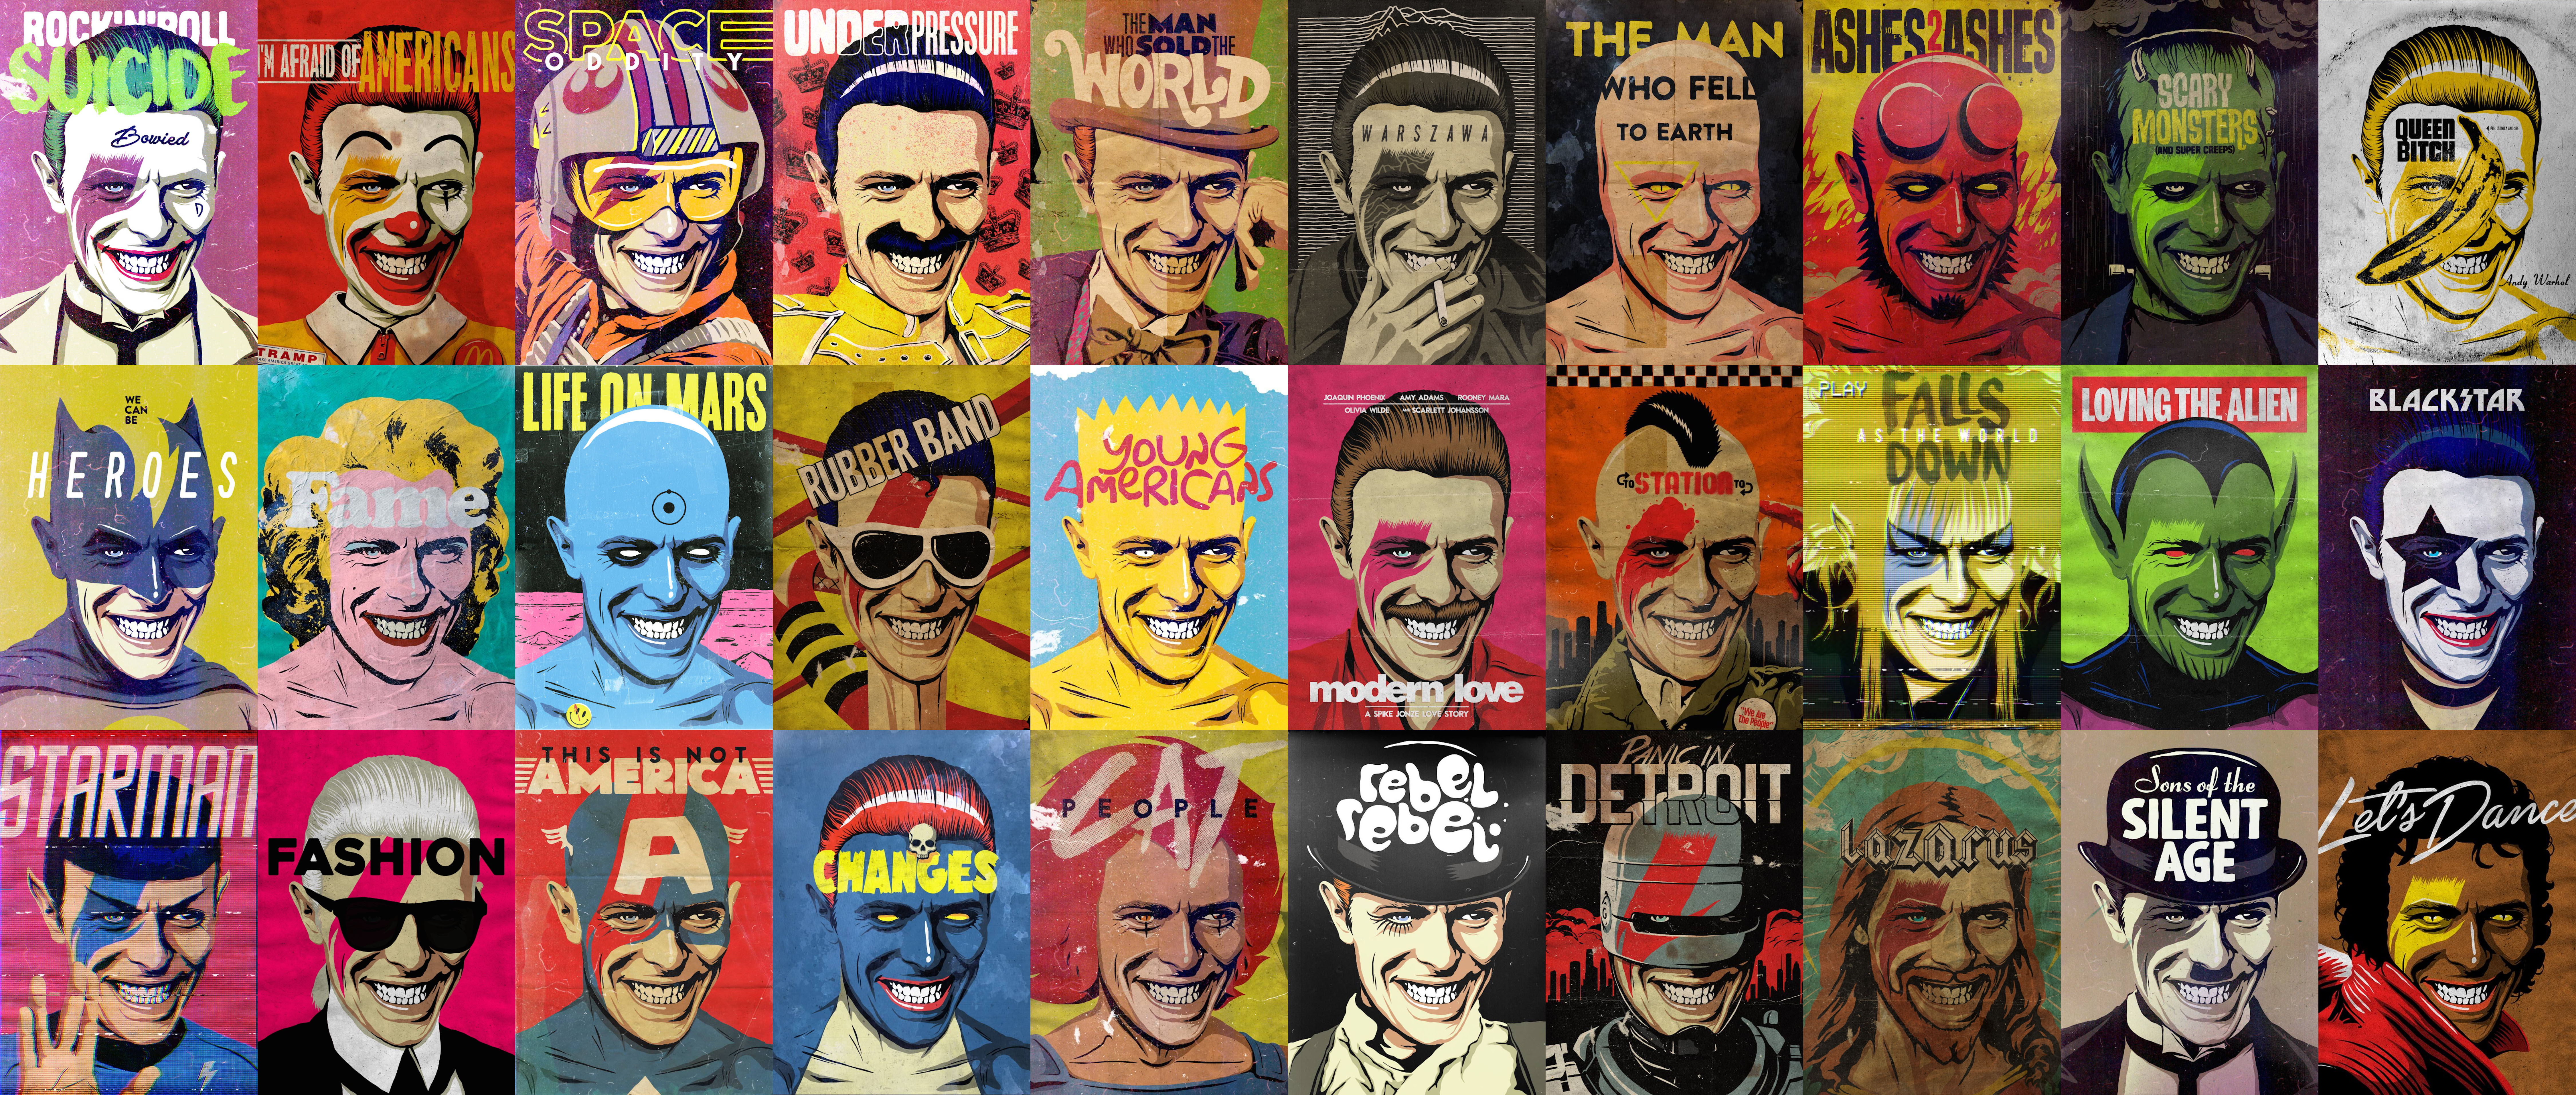 All David Bowie Pop Culture posters, by Billy Butcher.